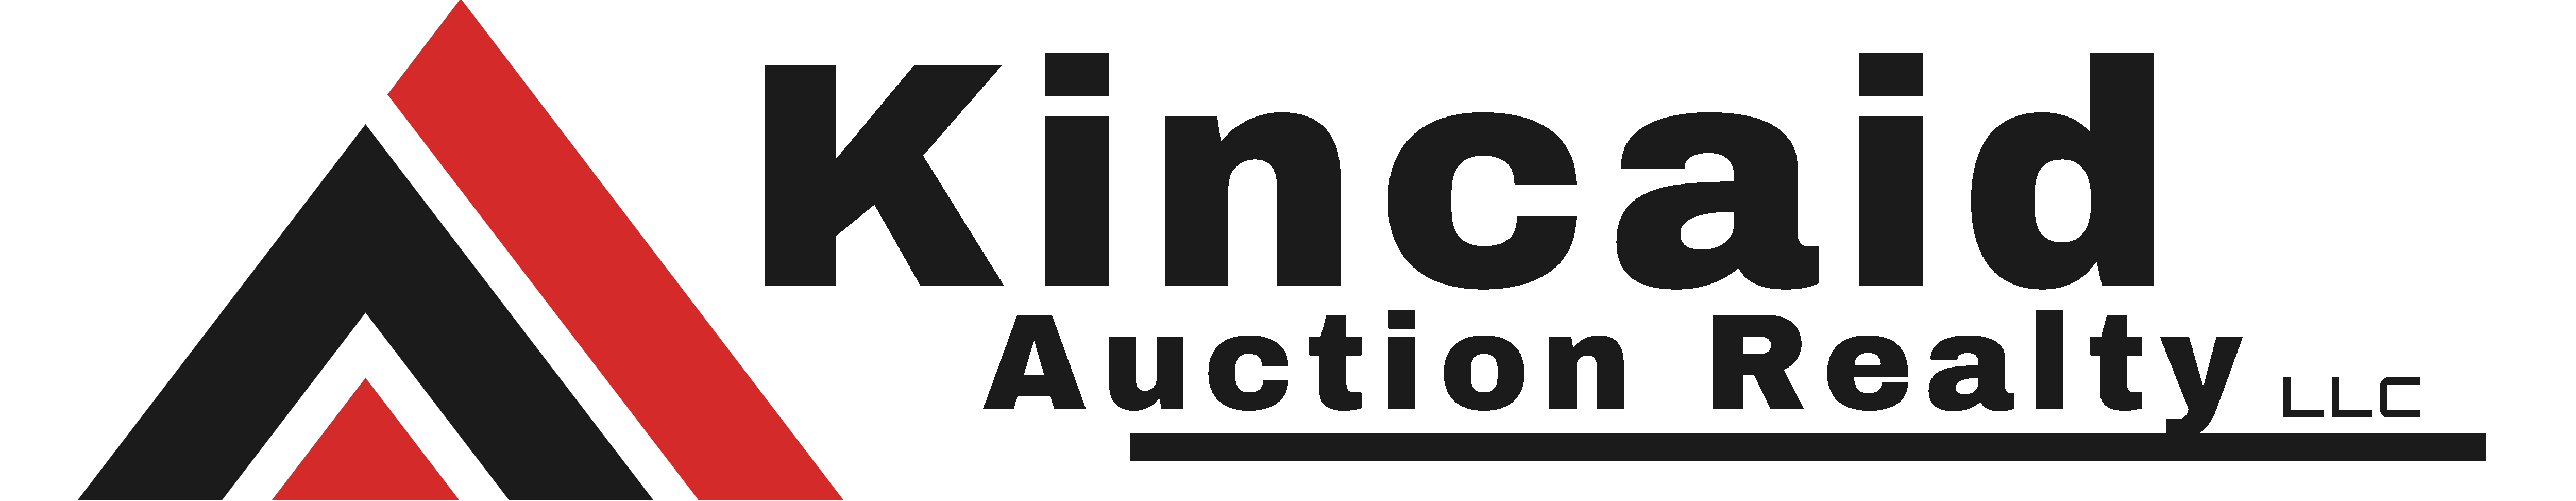 Kincaid Auction Realty LLC